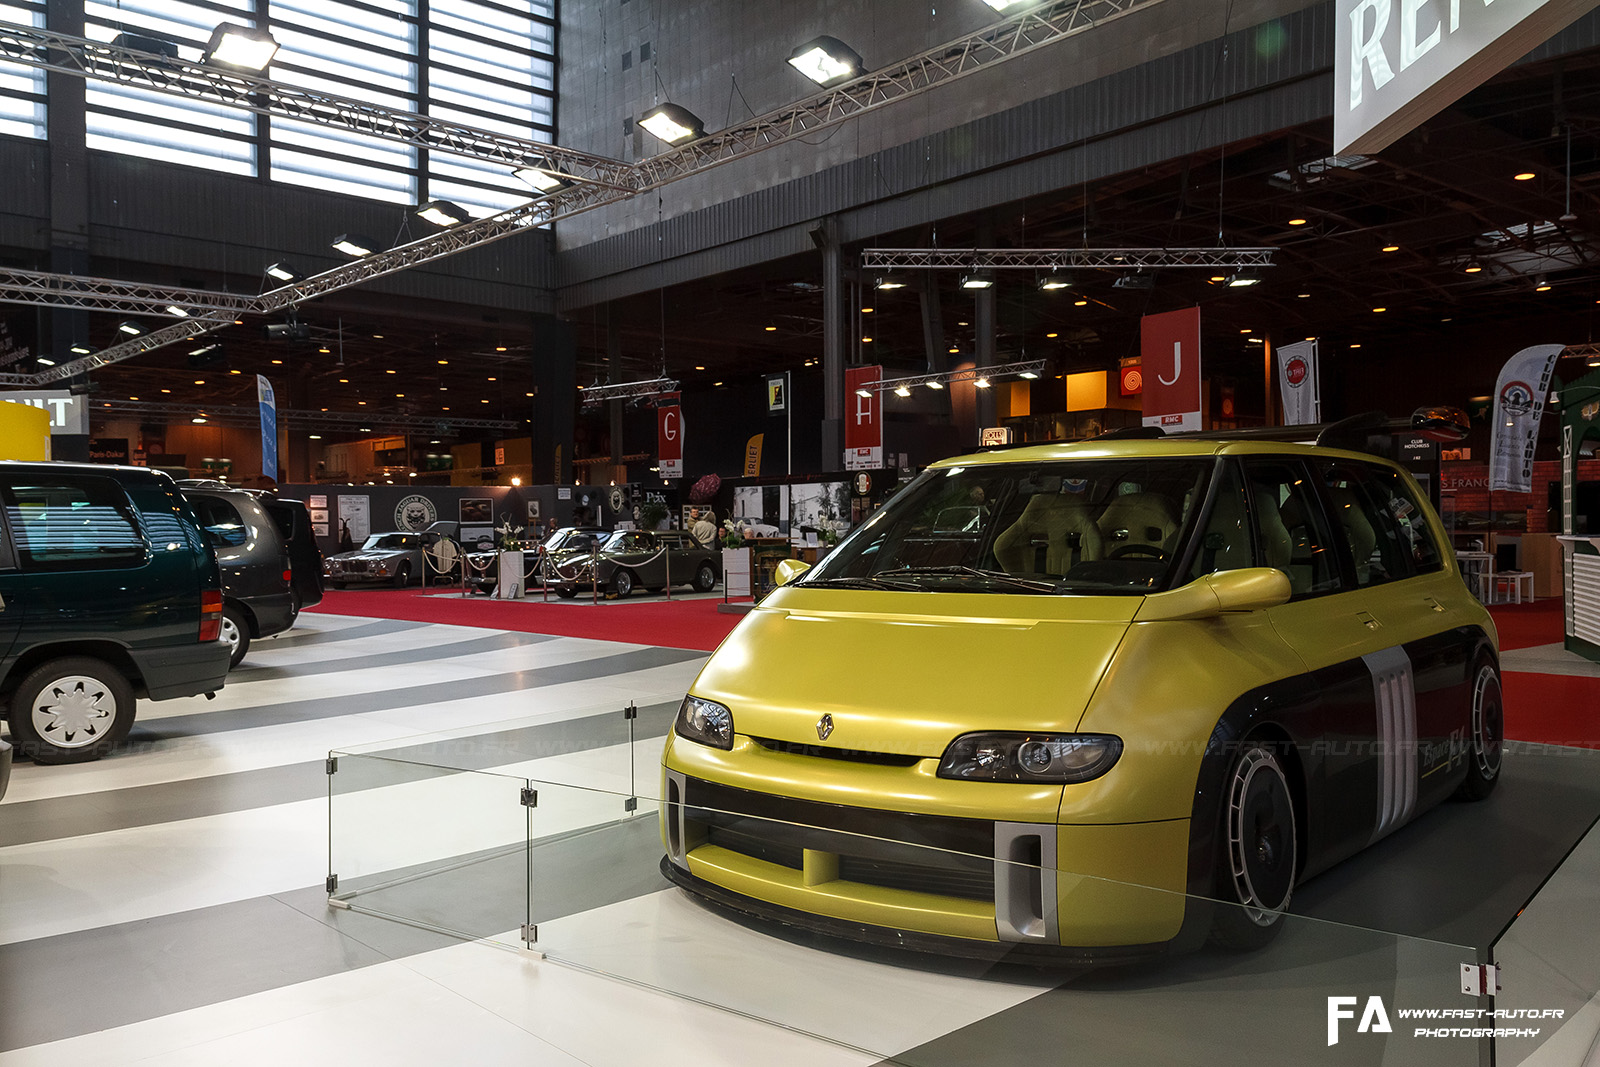 salon retromobile fevrier 2014 renault espace f1 retromobile 2014 paris. Black Bedroom Furniture Sets. Home Design Ideas